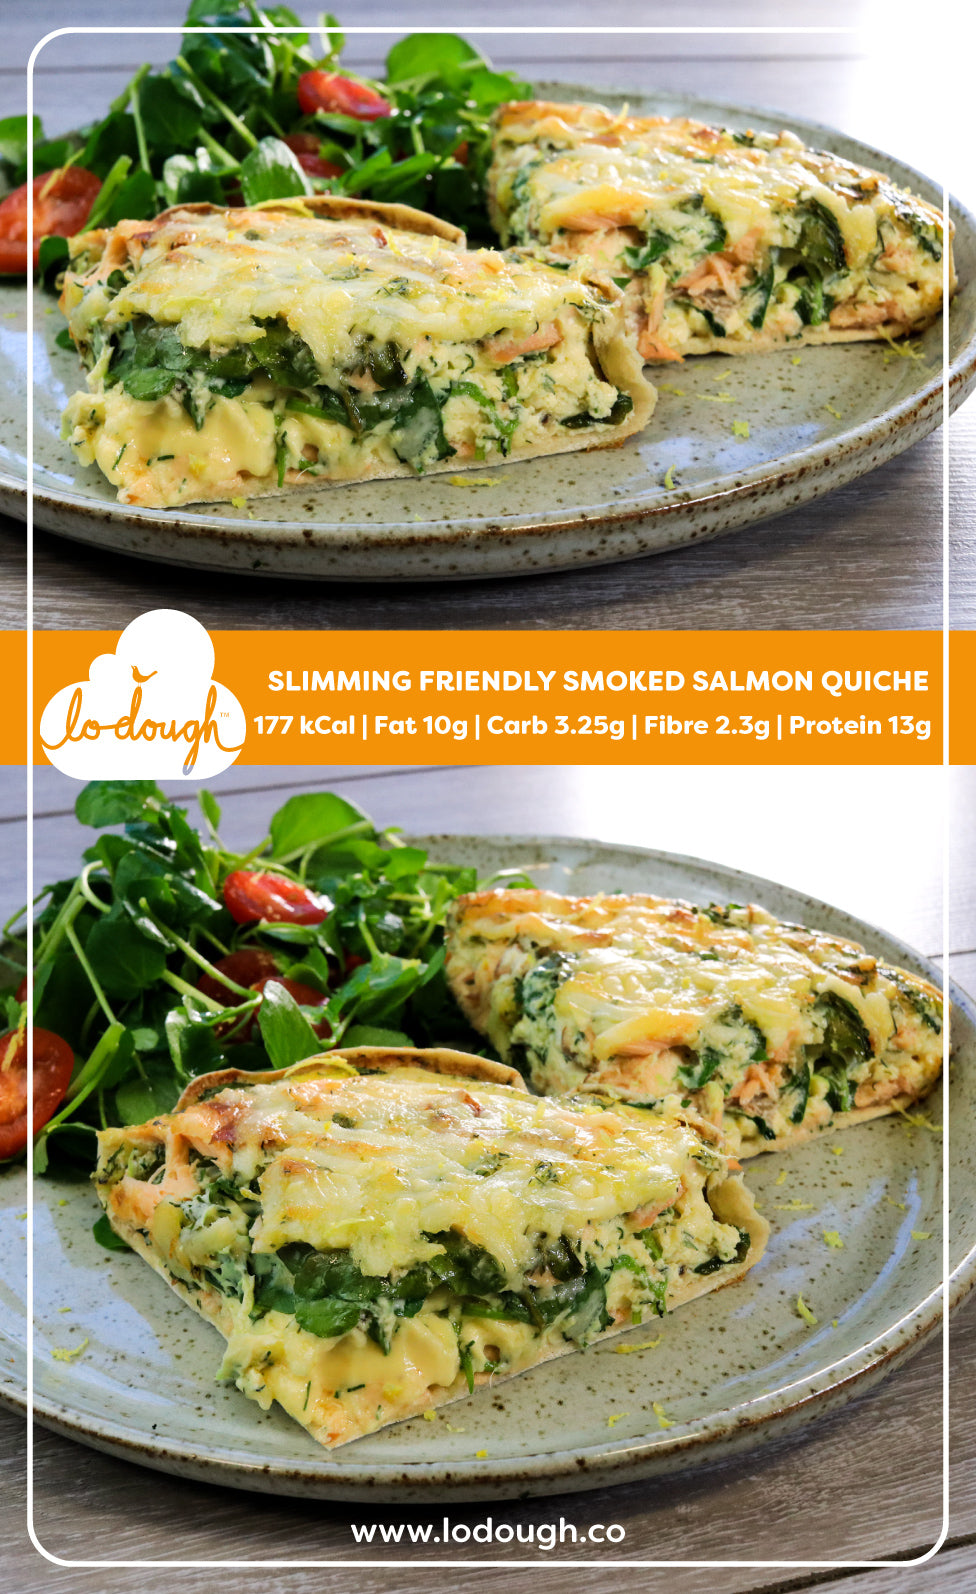 Slimming Friendly Smoked Salmon Quiche